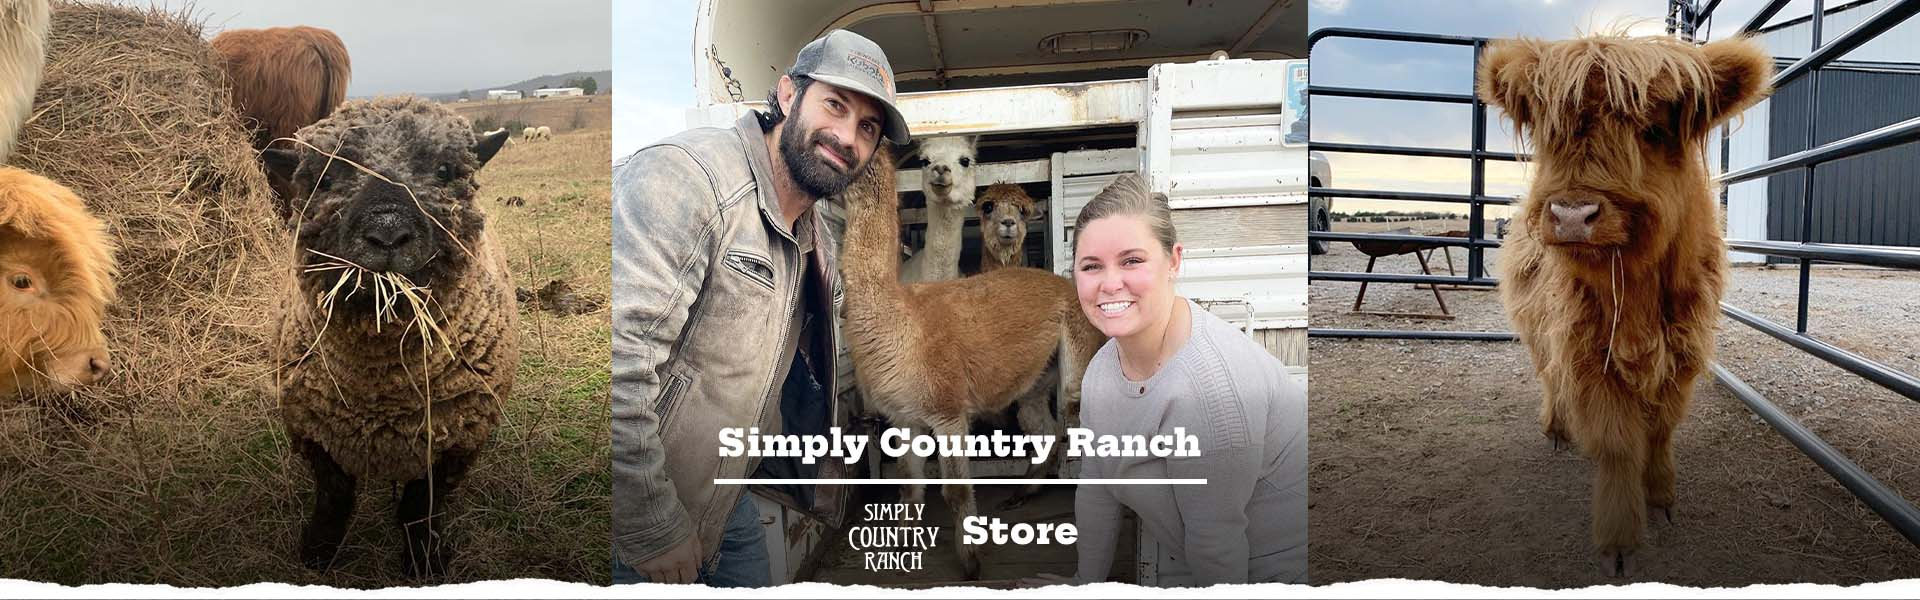 simply-country-ranch-banner.jpg